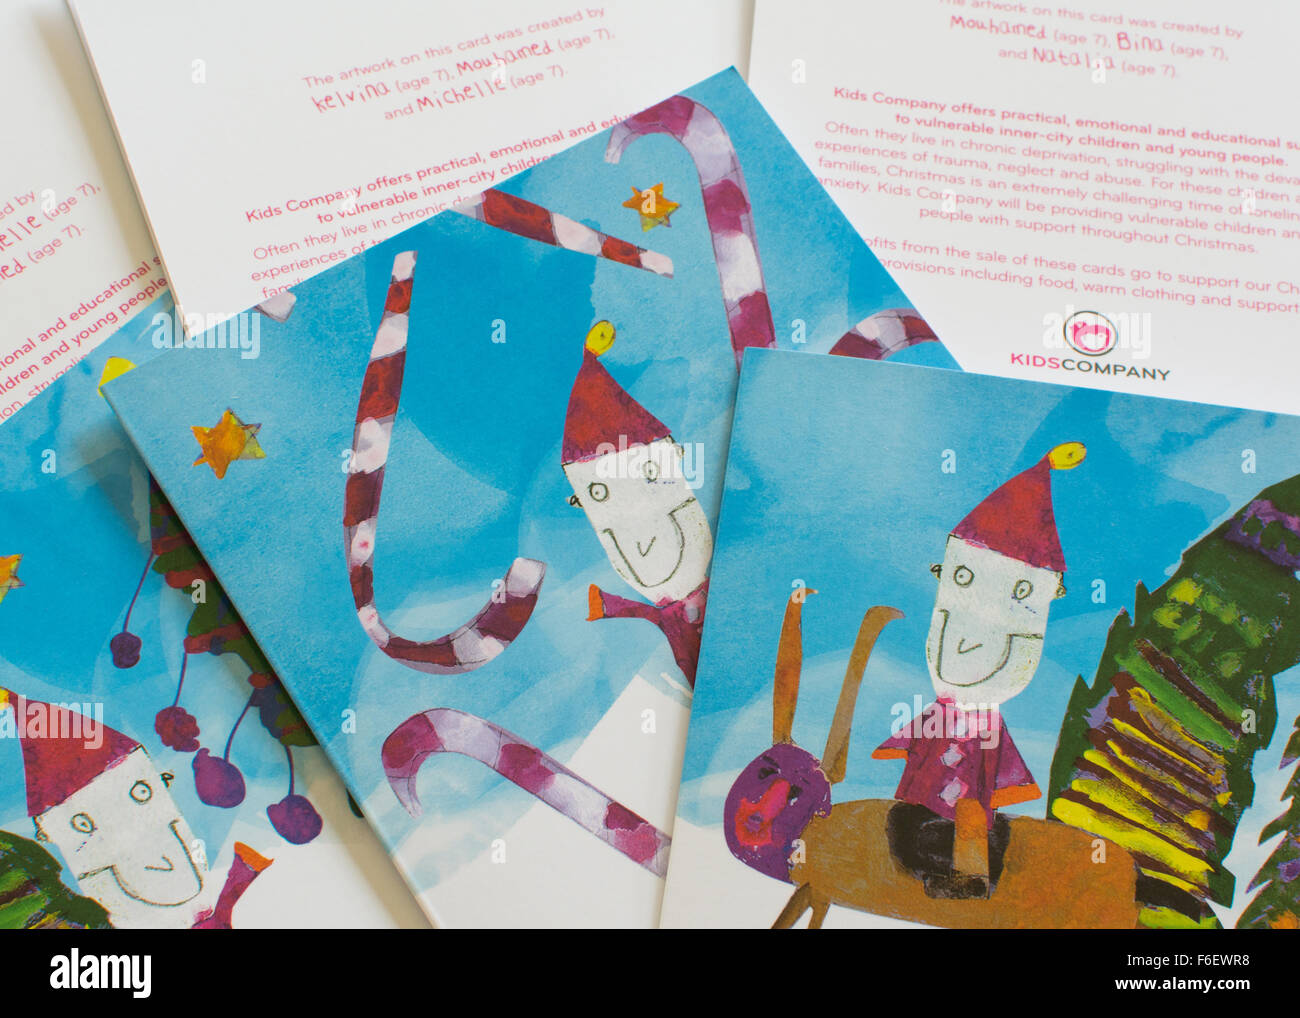 Christmas Cards supporting Kids Company charity - 2014 Stock Photo ...